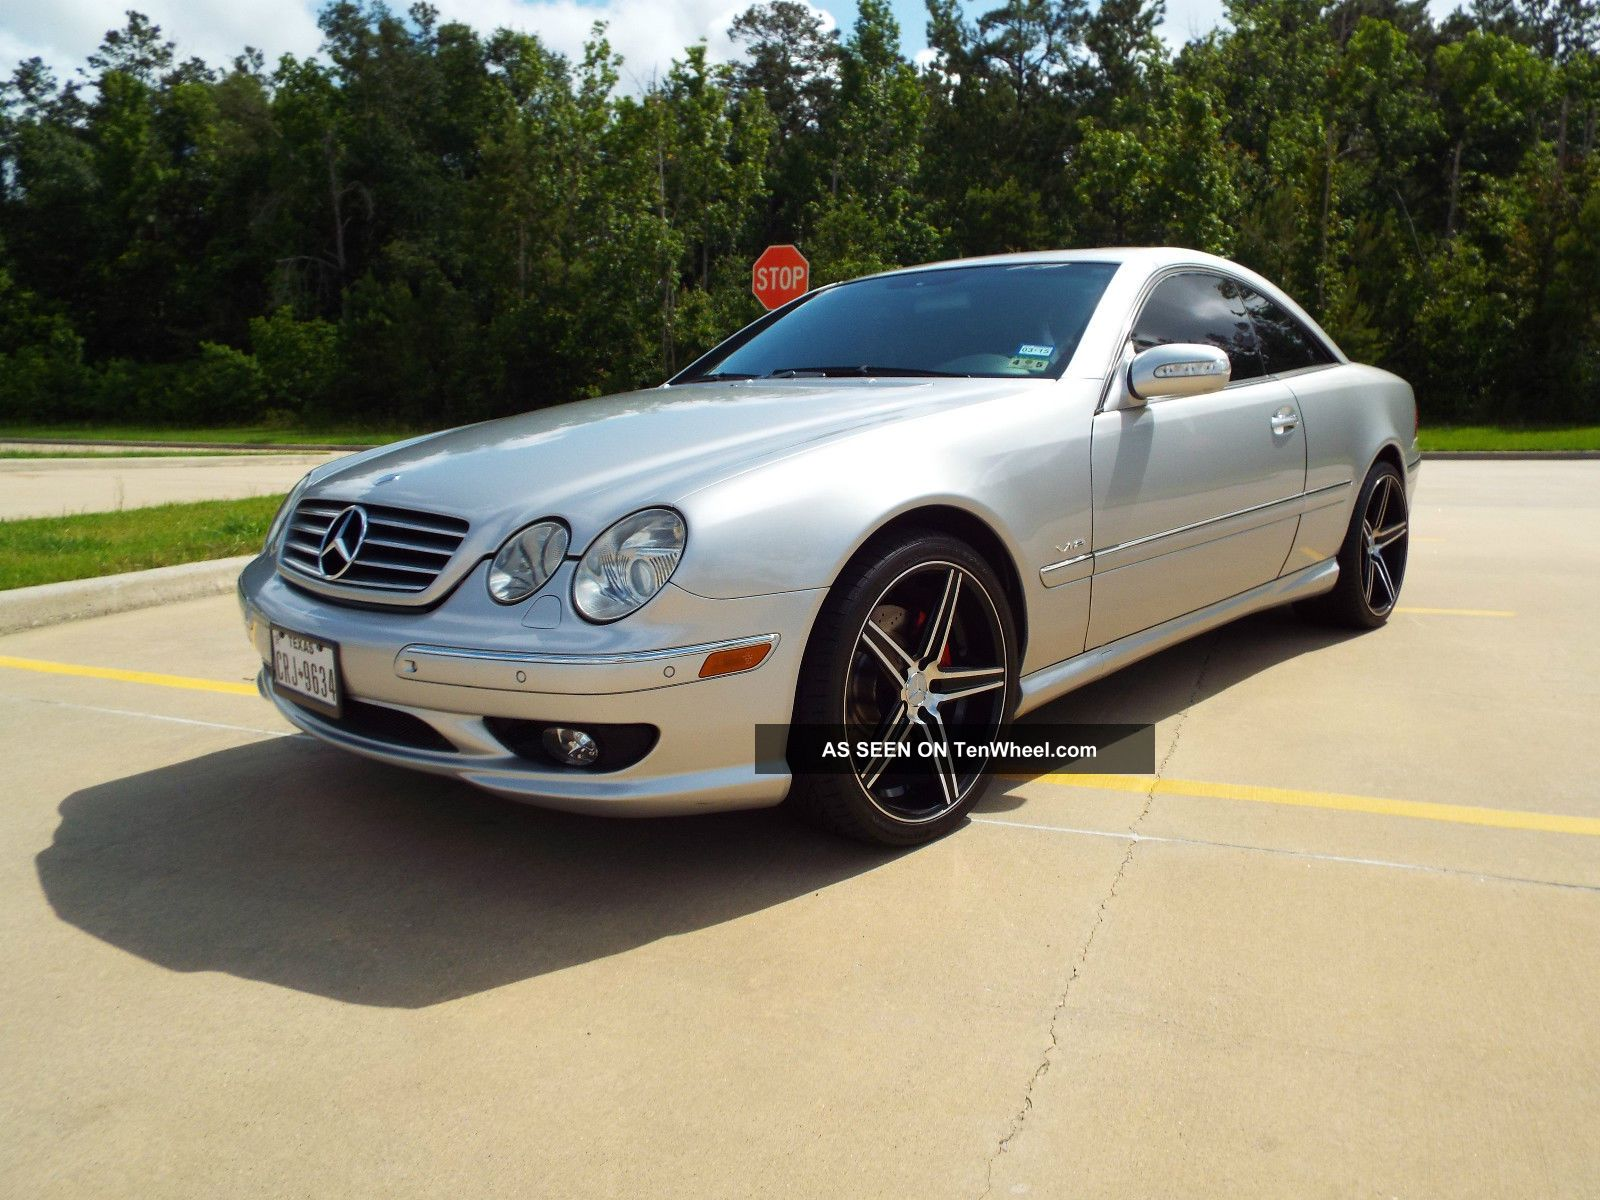 2001 mercedes benz cl600 coupe with amg options for Cl600 mercedes benz